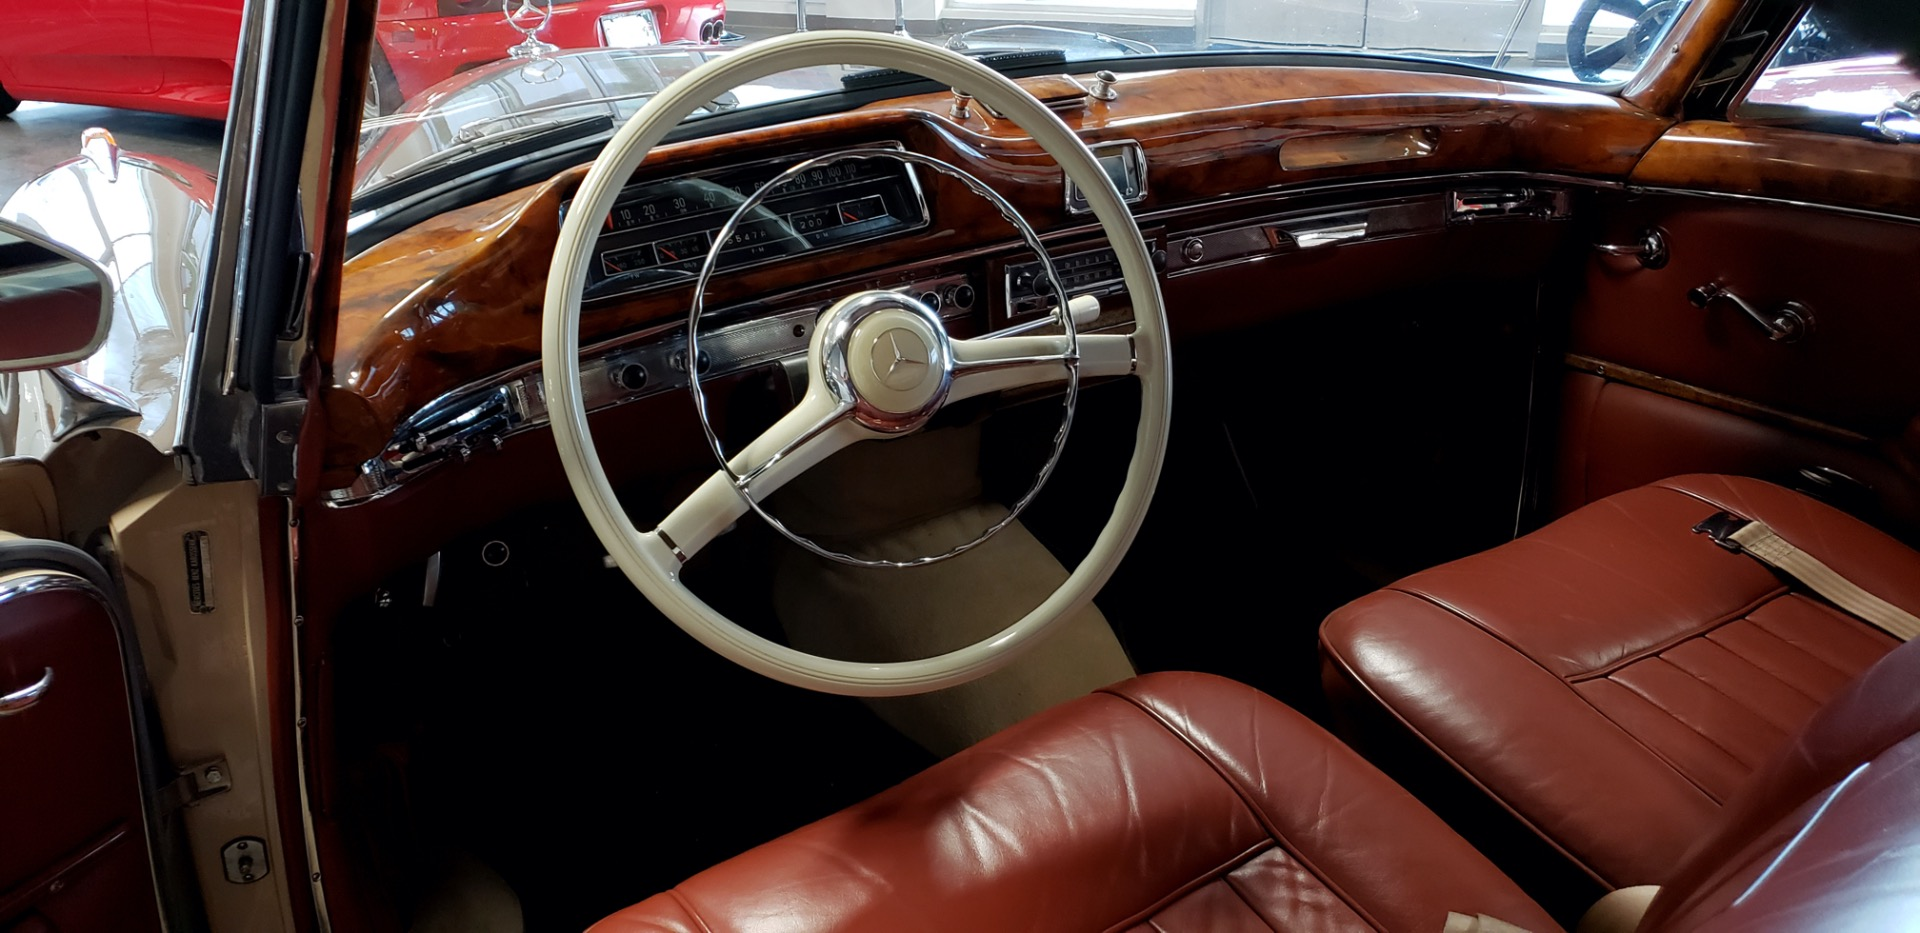 Used 1957 Mercedes-Benz 220 S Cabriolet - Full Restoration for sale Sold at Formula Imports in Charlotte NC 28227 21